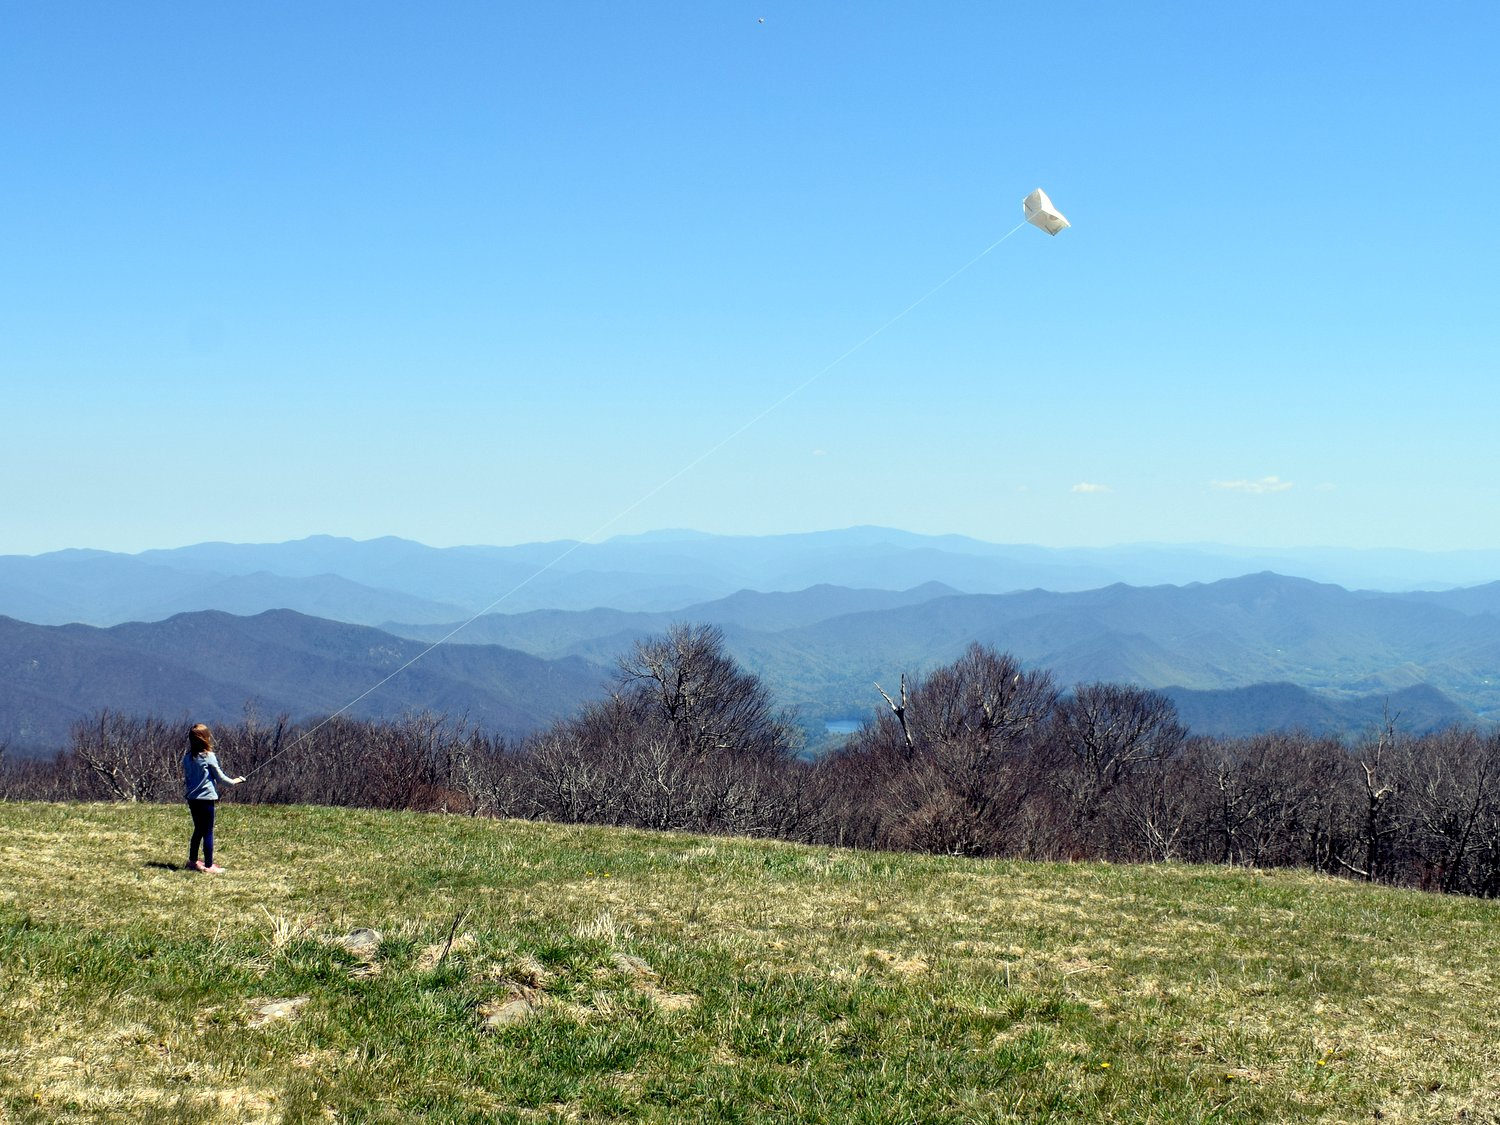 One of the best views on the Cherohala Skyway